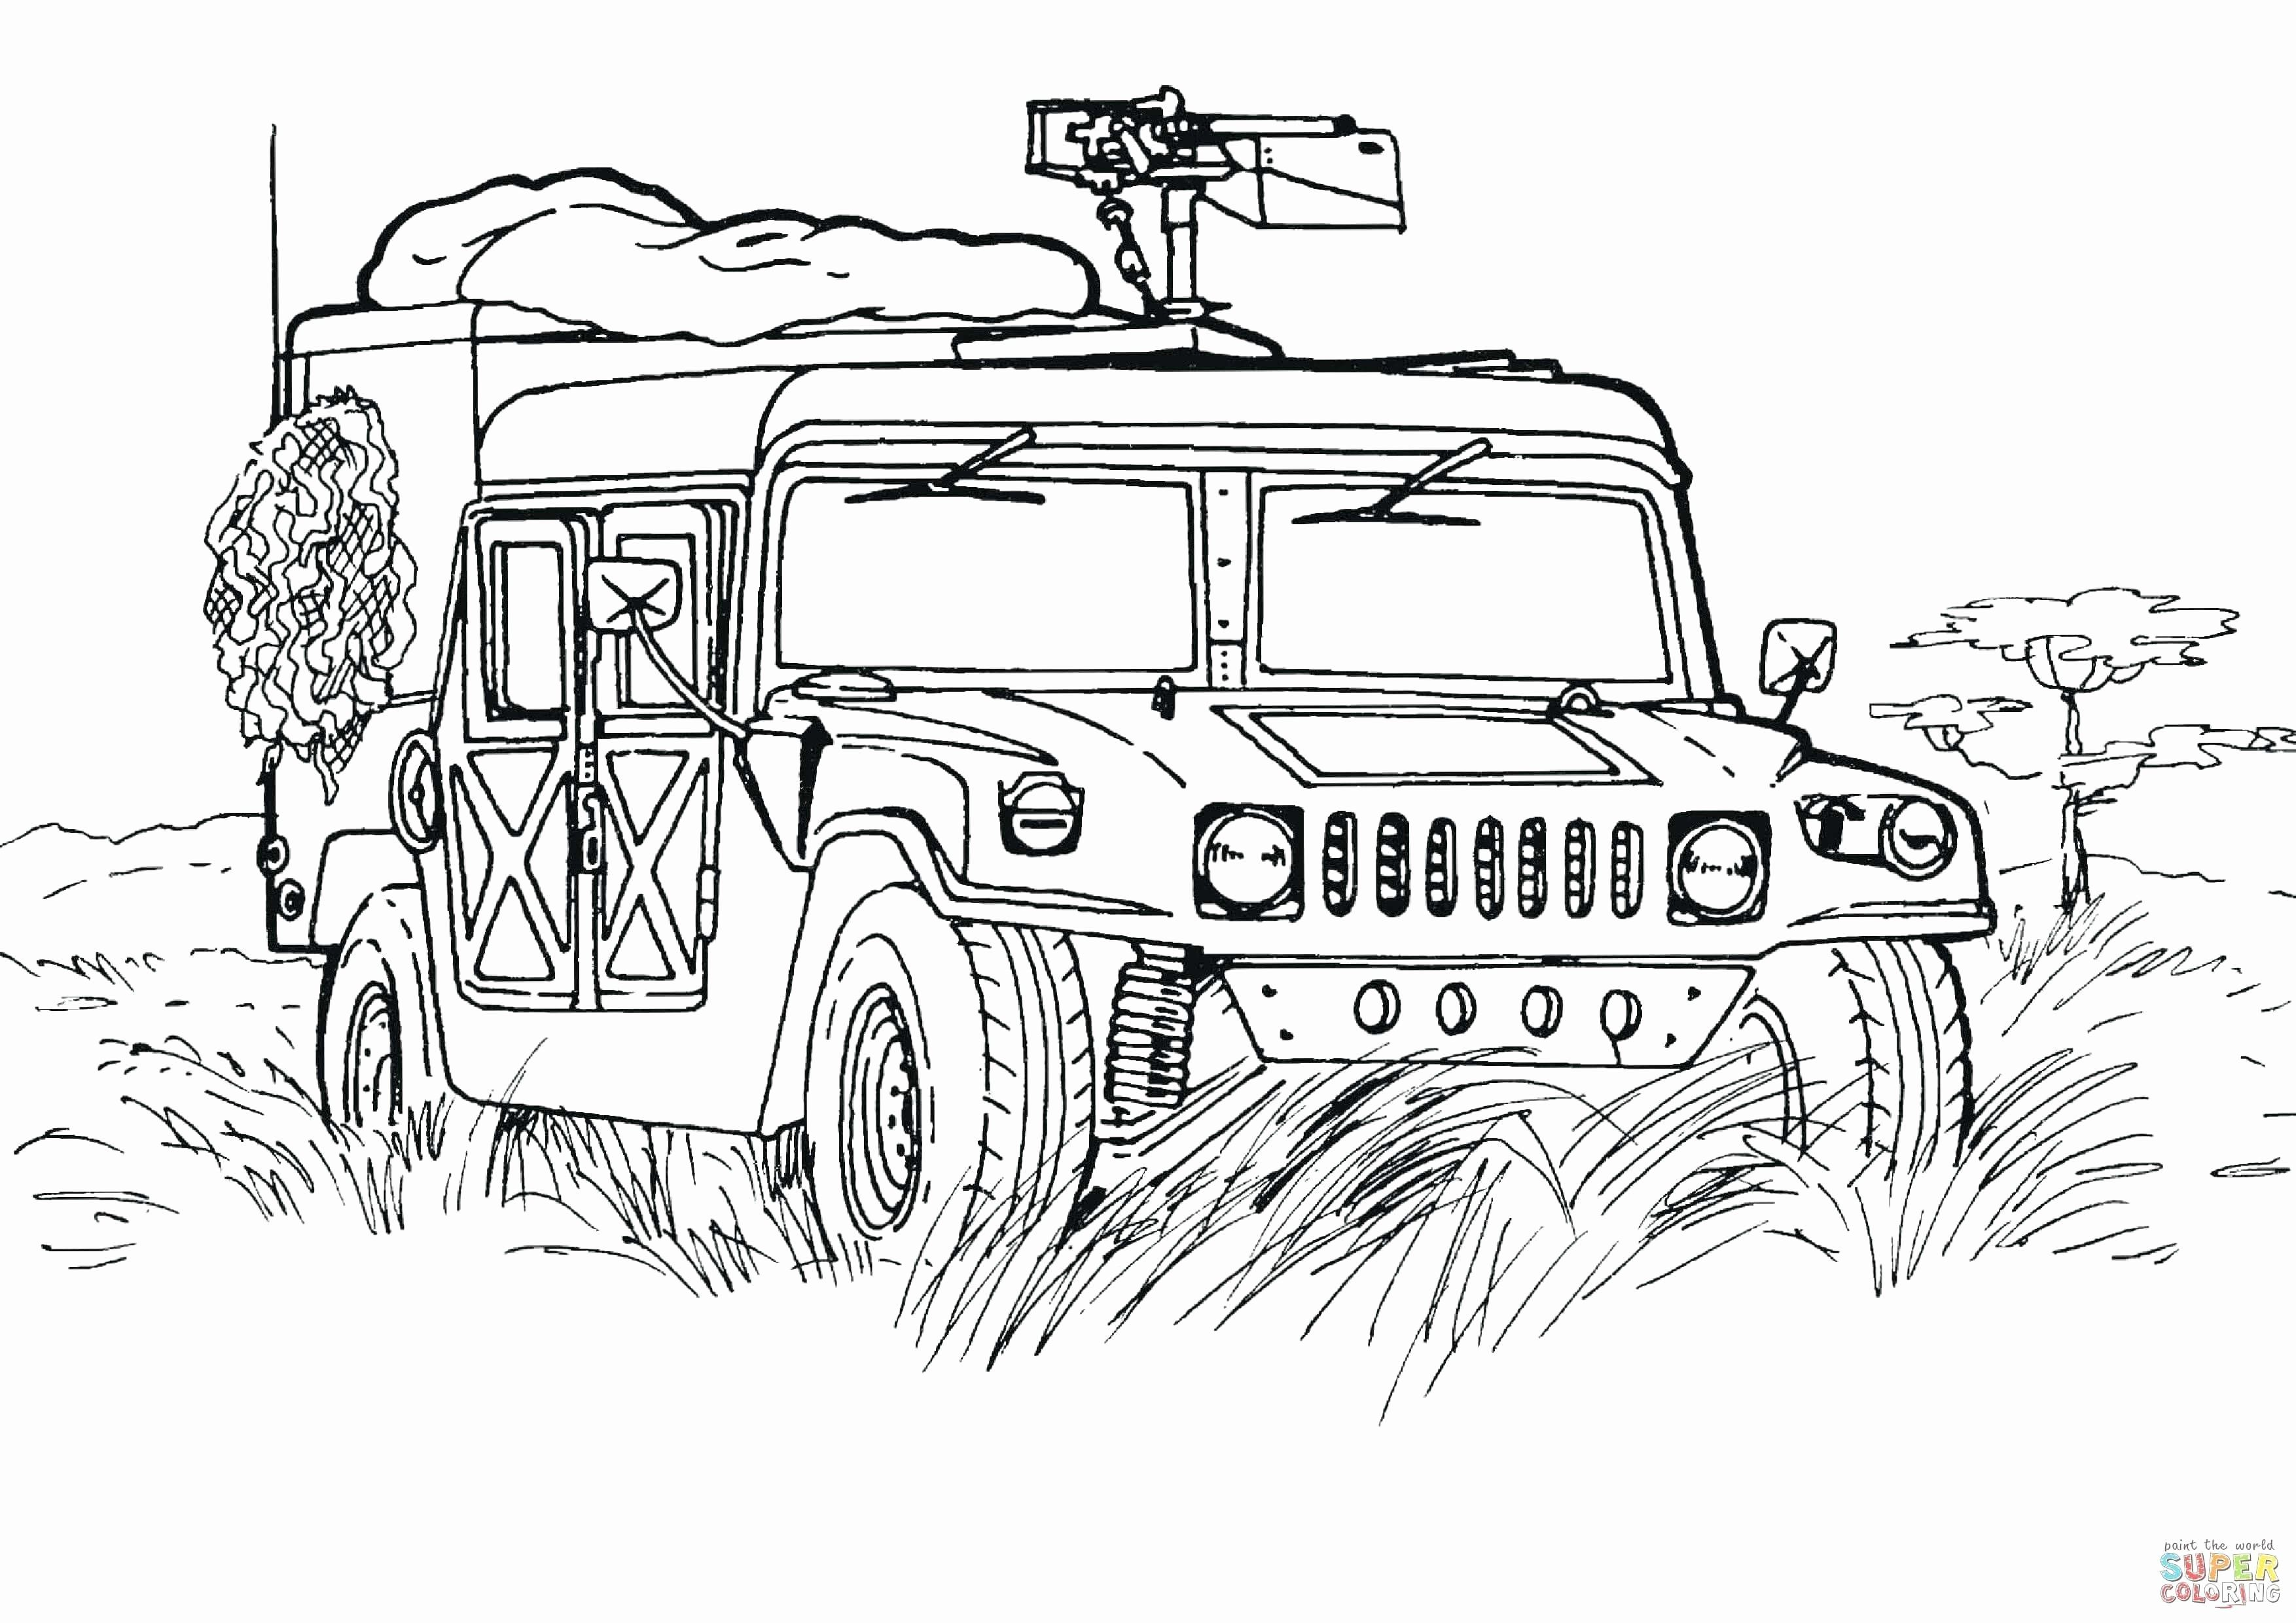 Free Coloring Pages Military Vehicles Elegant Printable Coloring Pages Army Tanks Outpo Monster Truck Coloring Pages Cars Coloring Pages Truck Coloring Pages